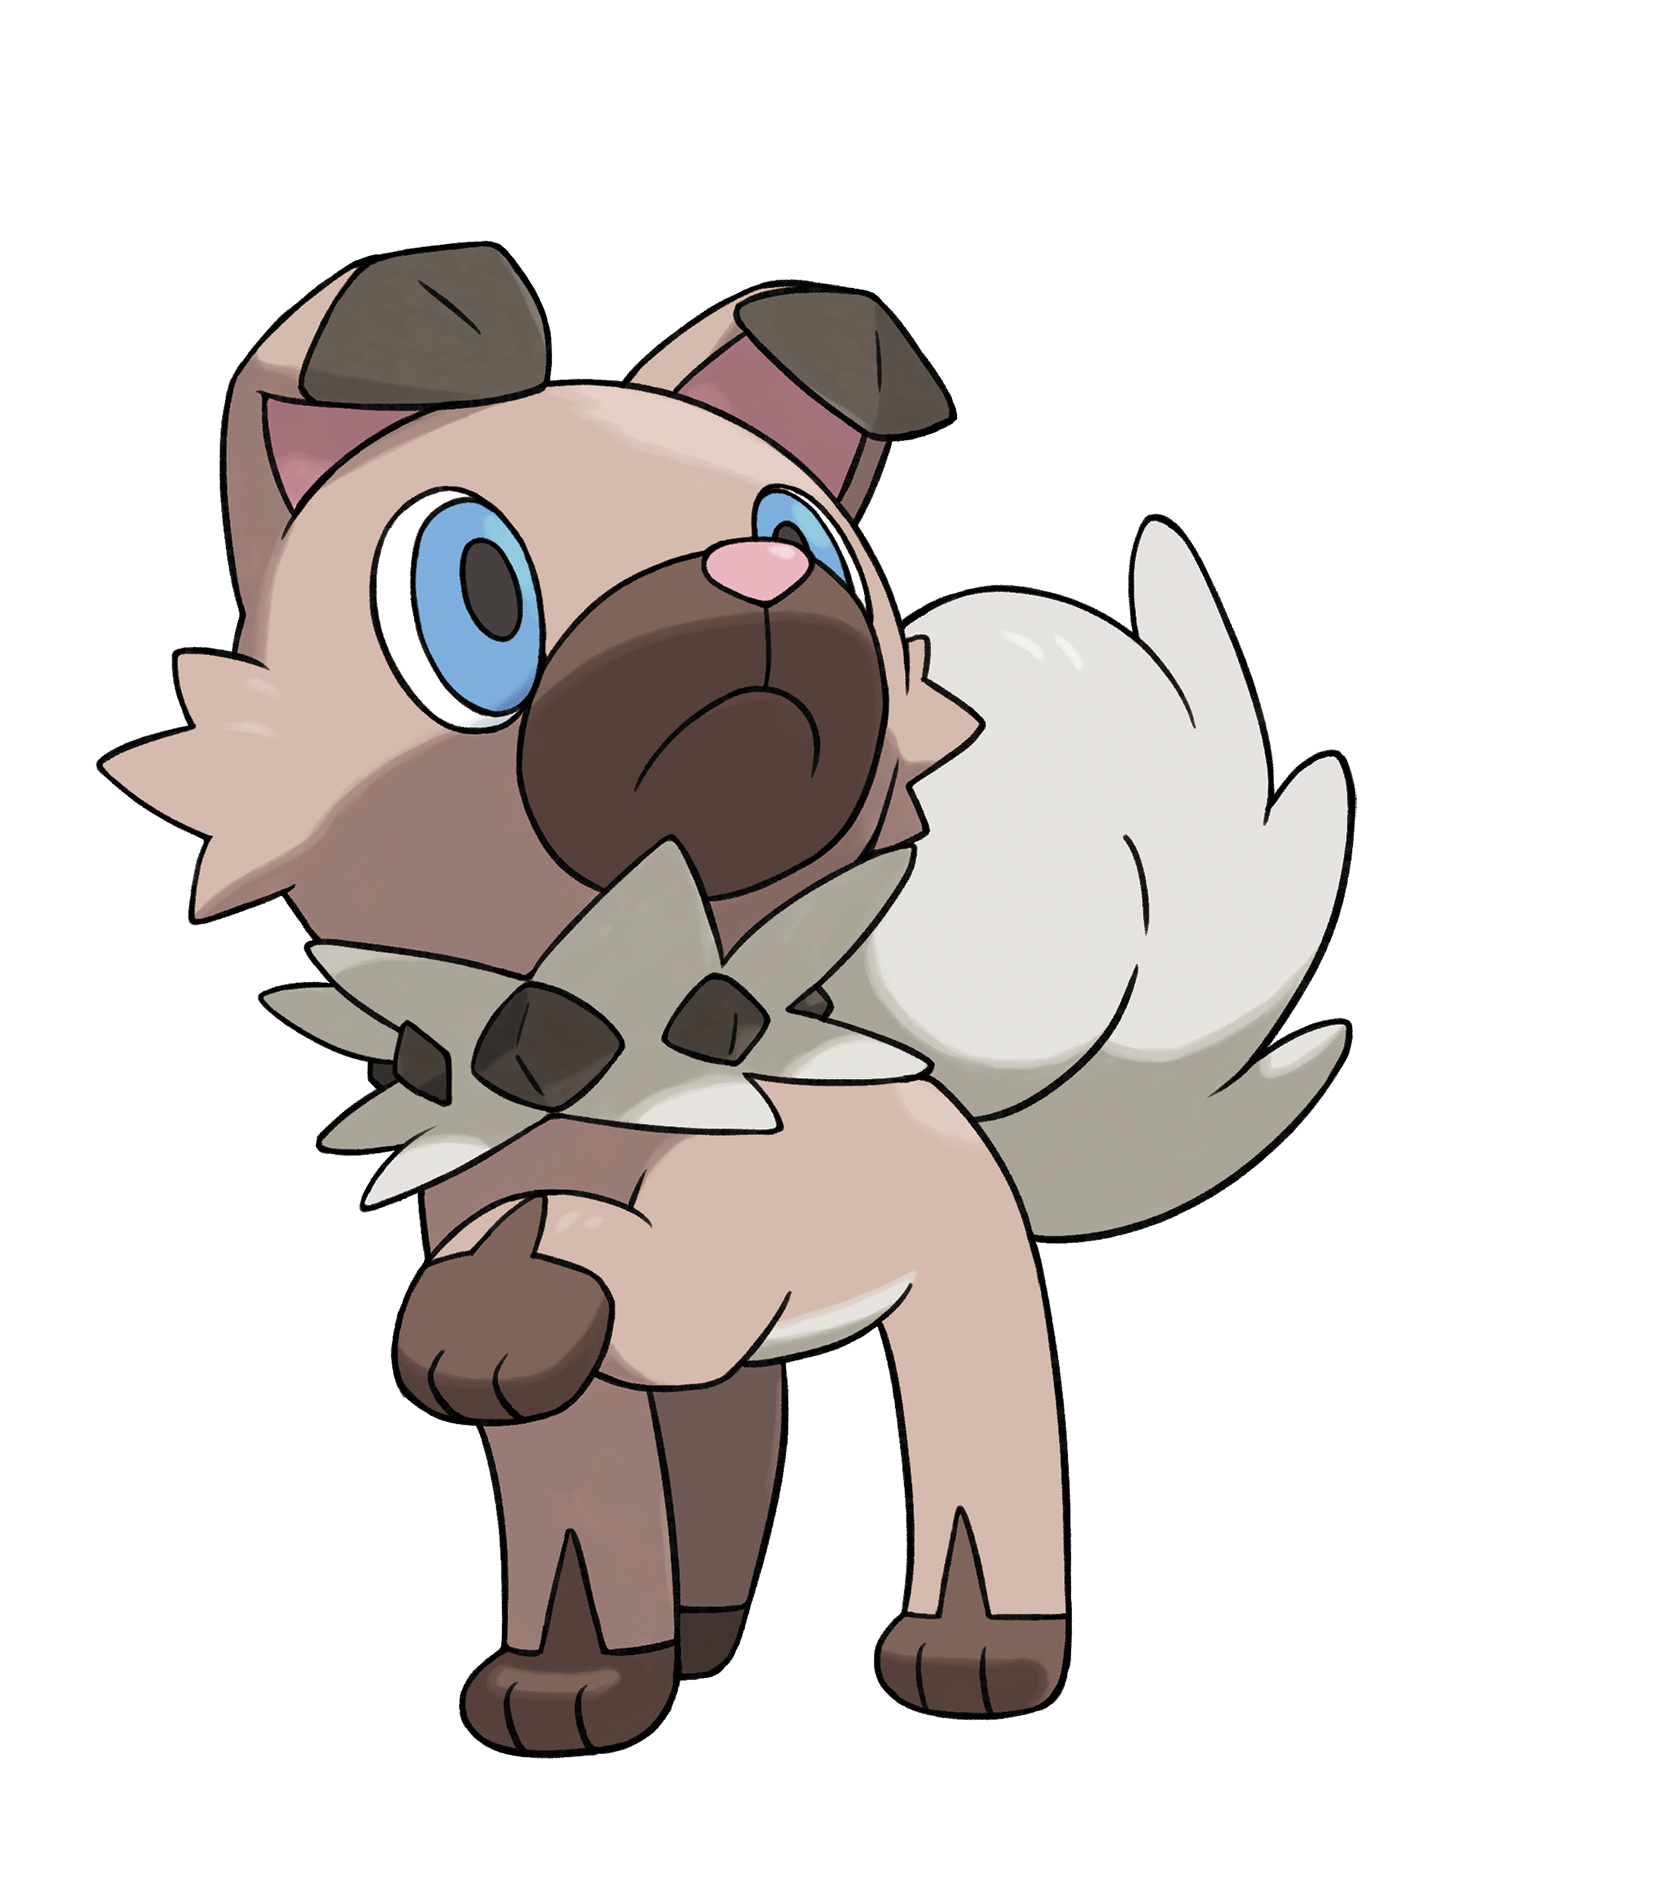 Pokemon ultra sun moon lycanroc (1)